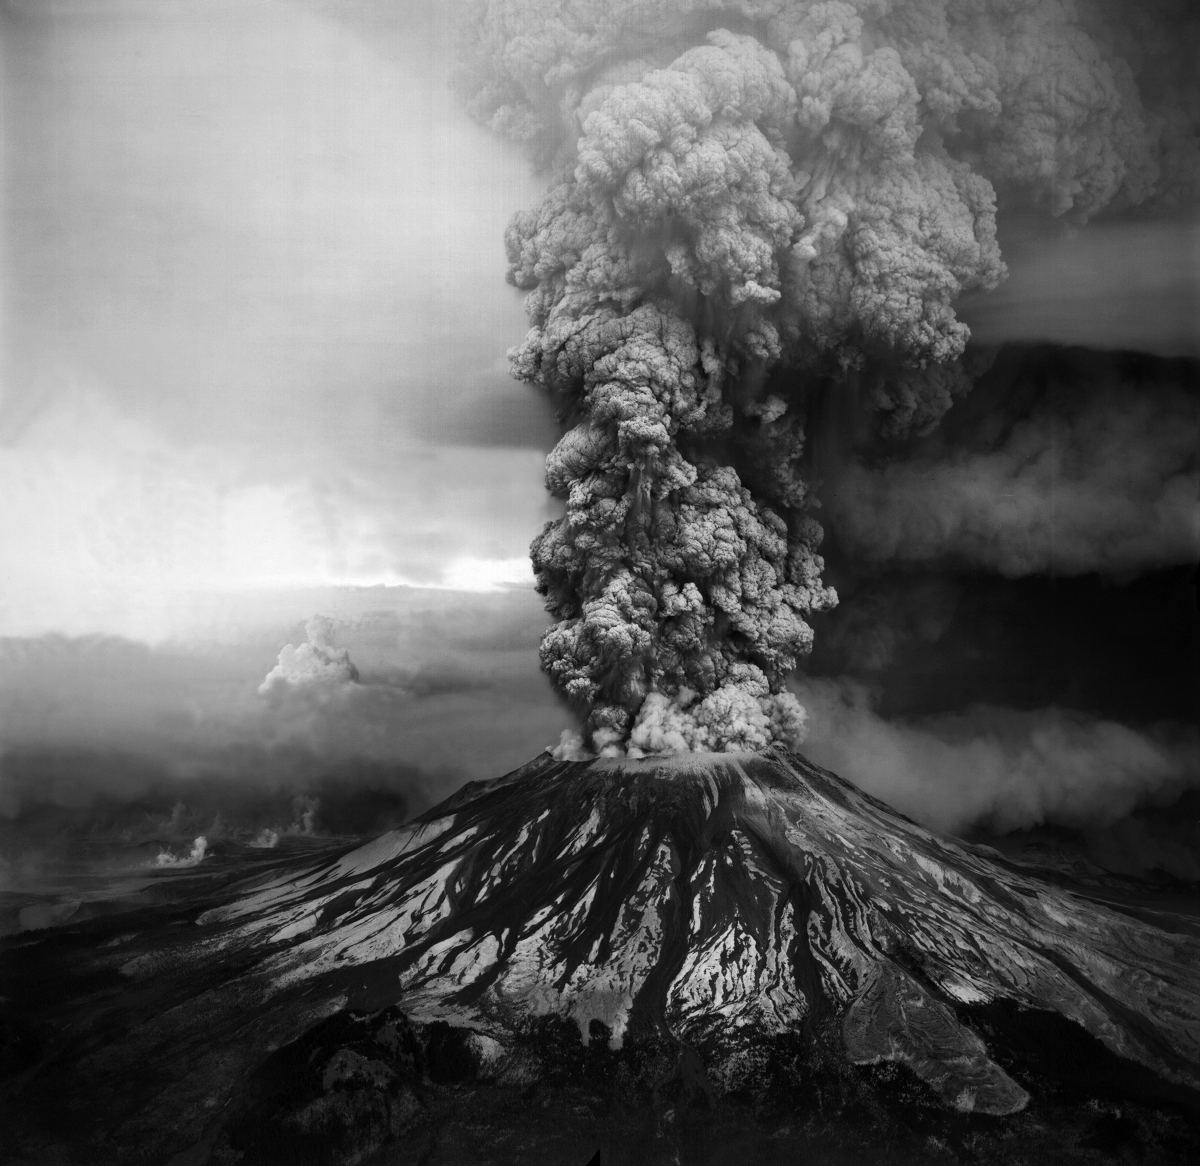 Mount St. Helens erupting on May 18, 1980. Credit: USGS